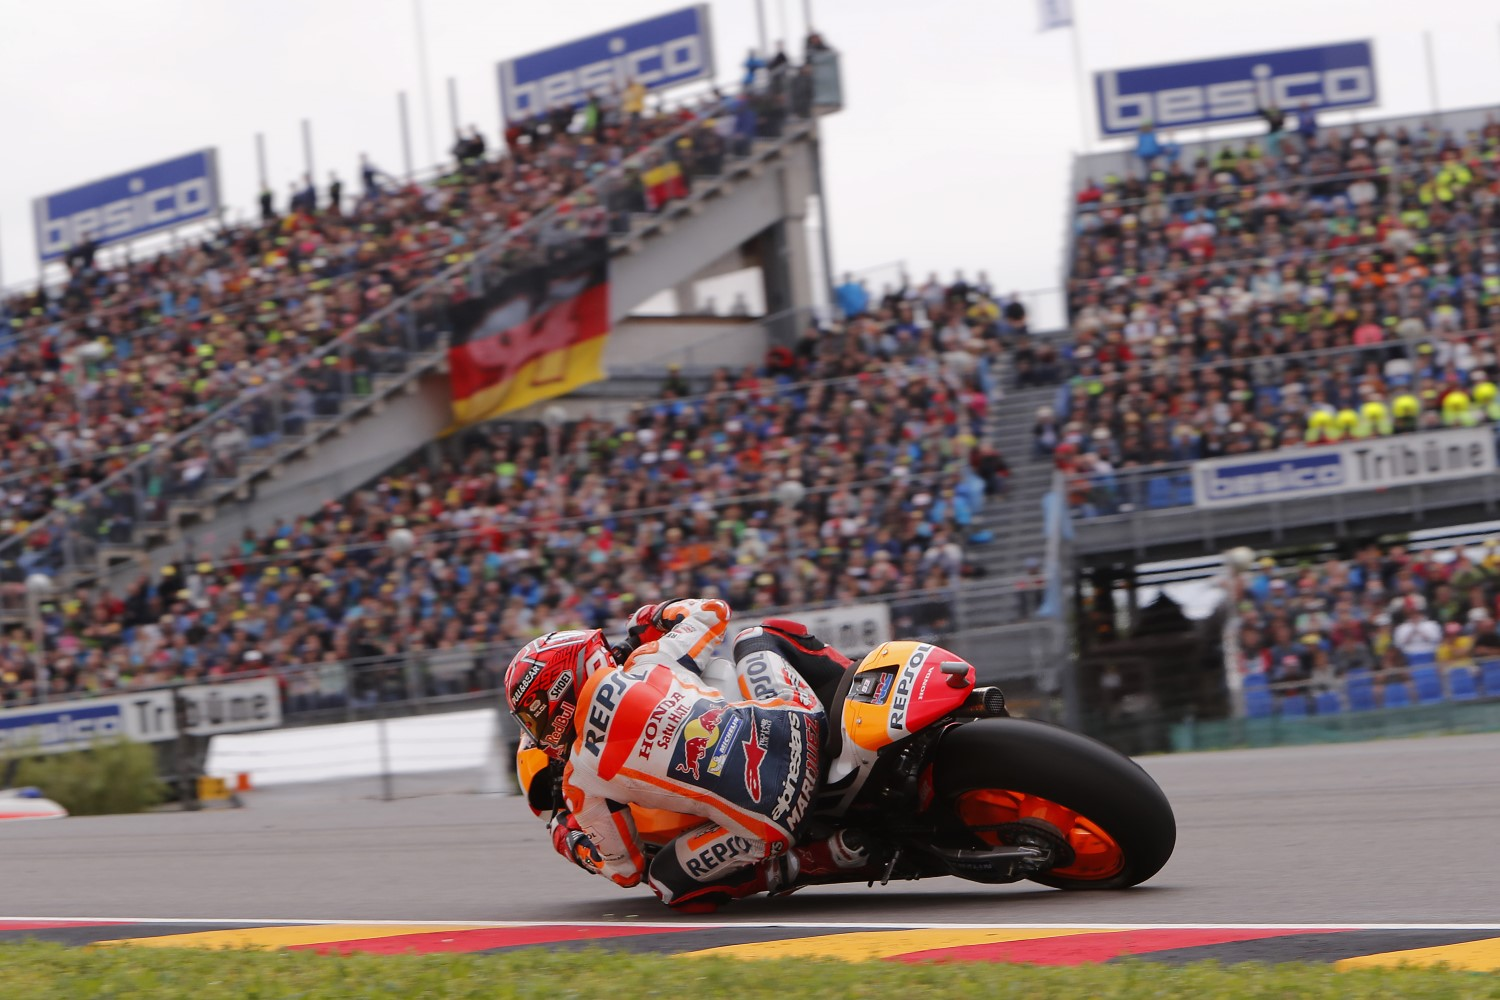 Marquez wins for 2nd time in 2017